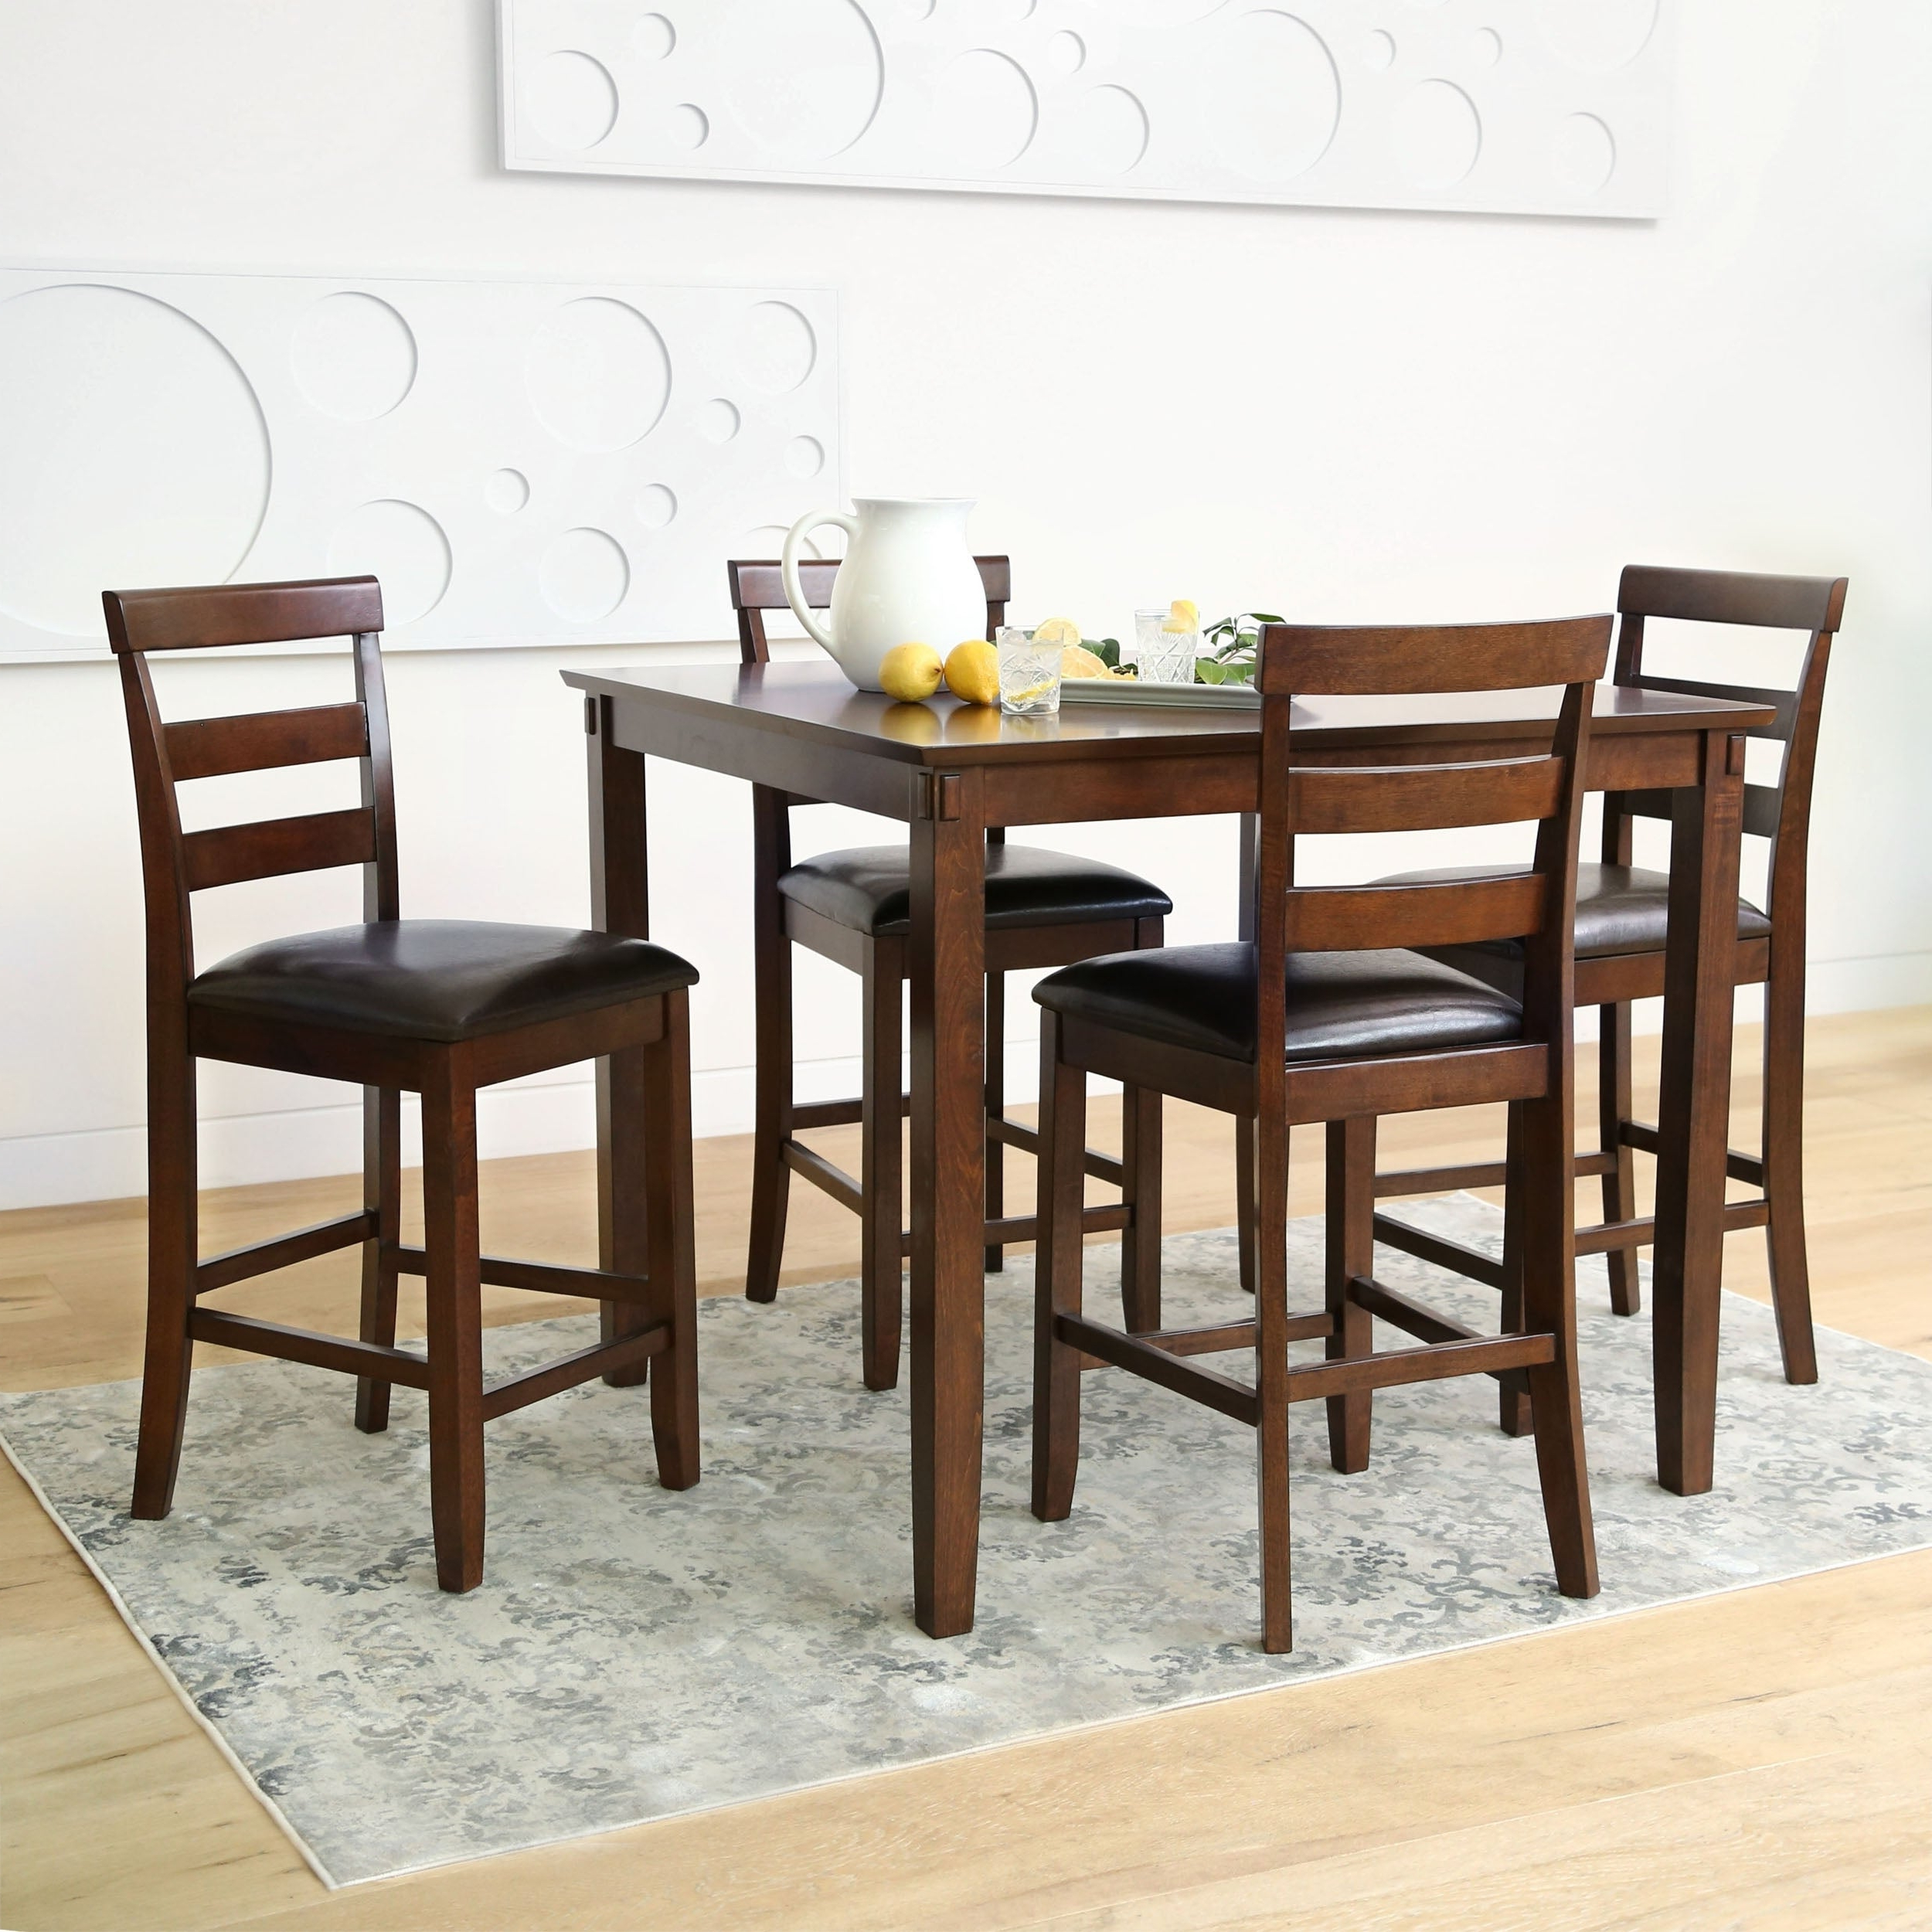 Abbyson Damian Counter Height 5 Piece Dining Set For Popular Bettencourt 3 Piece Counter Height Dining Sets (Gallery 17 of 20)